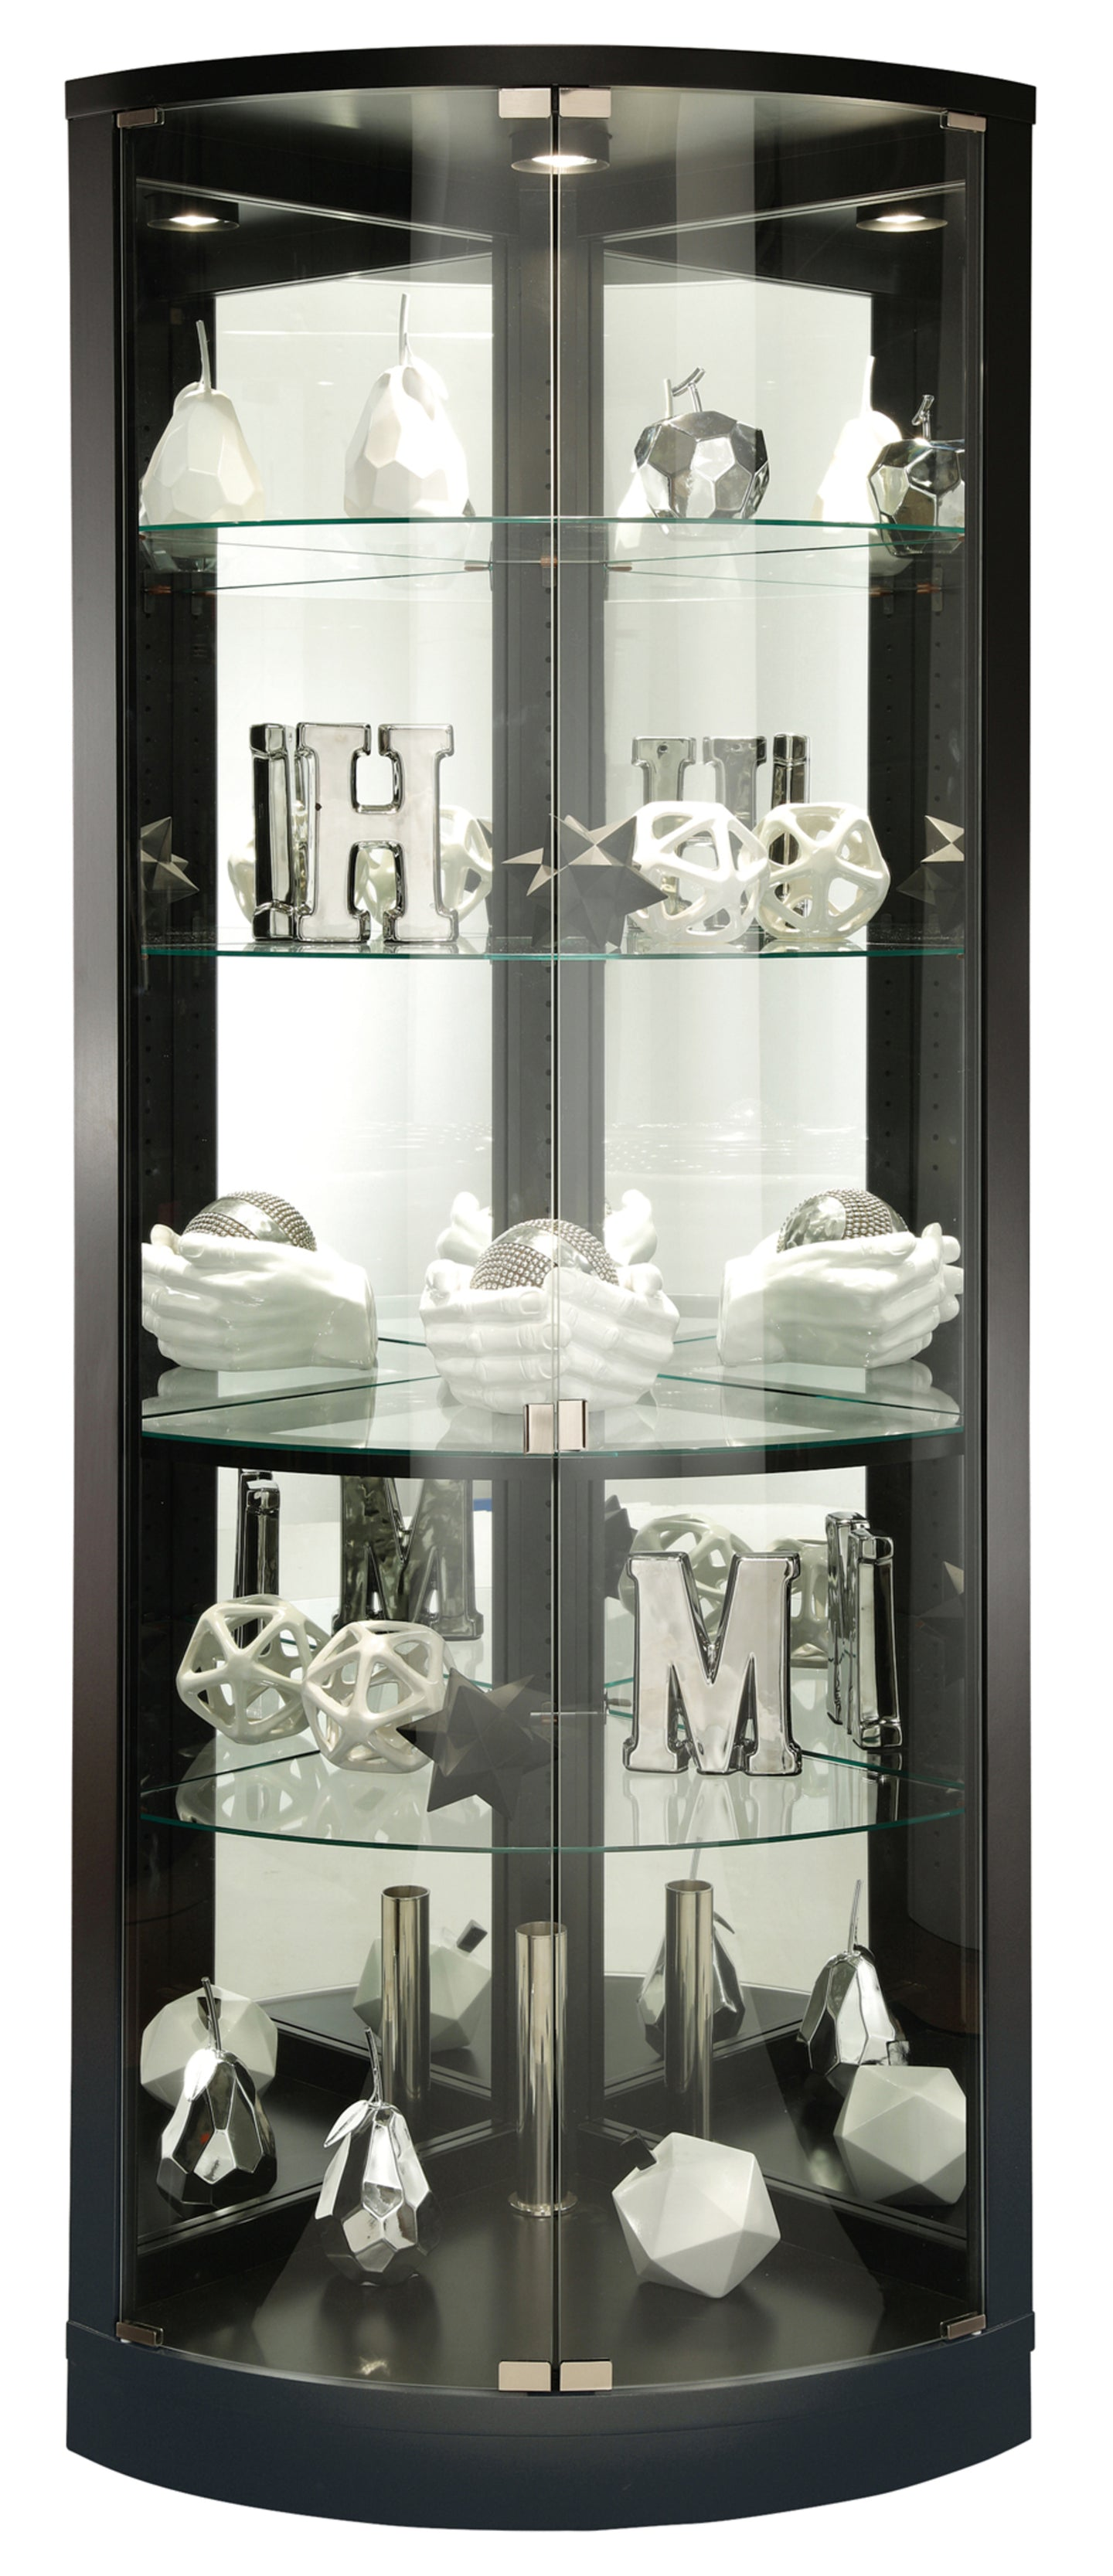 Howard Miller Jaime Corner Curio Cabinet 680609 - Curios And More